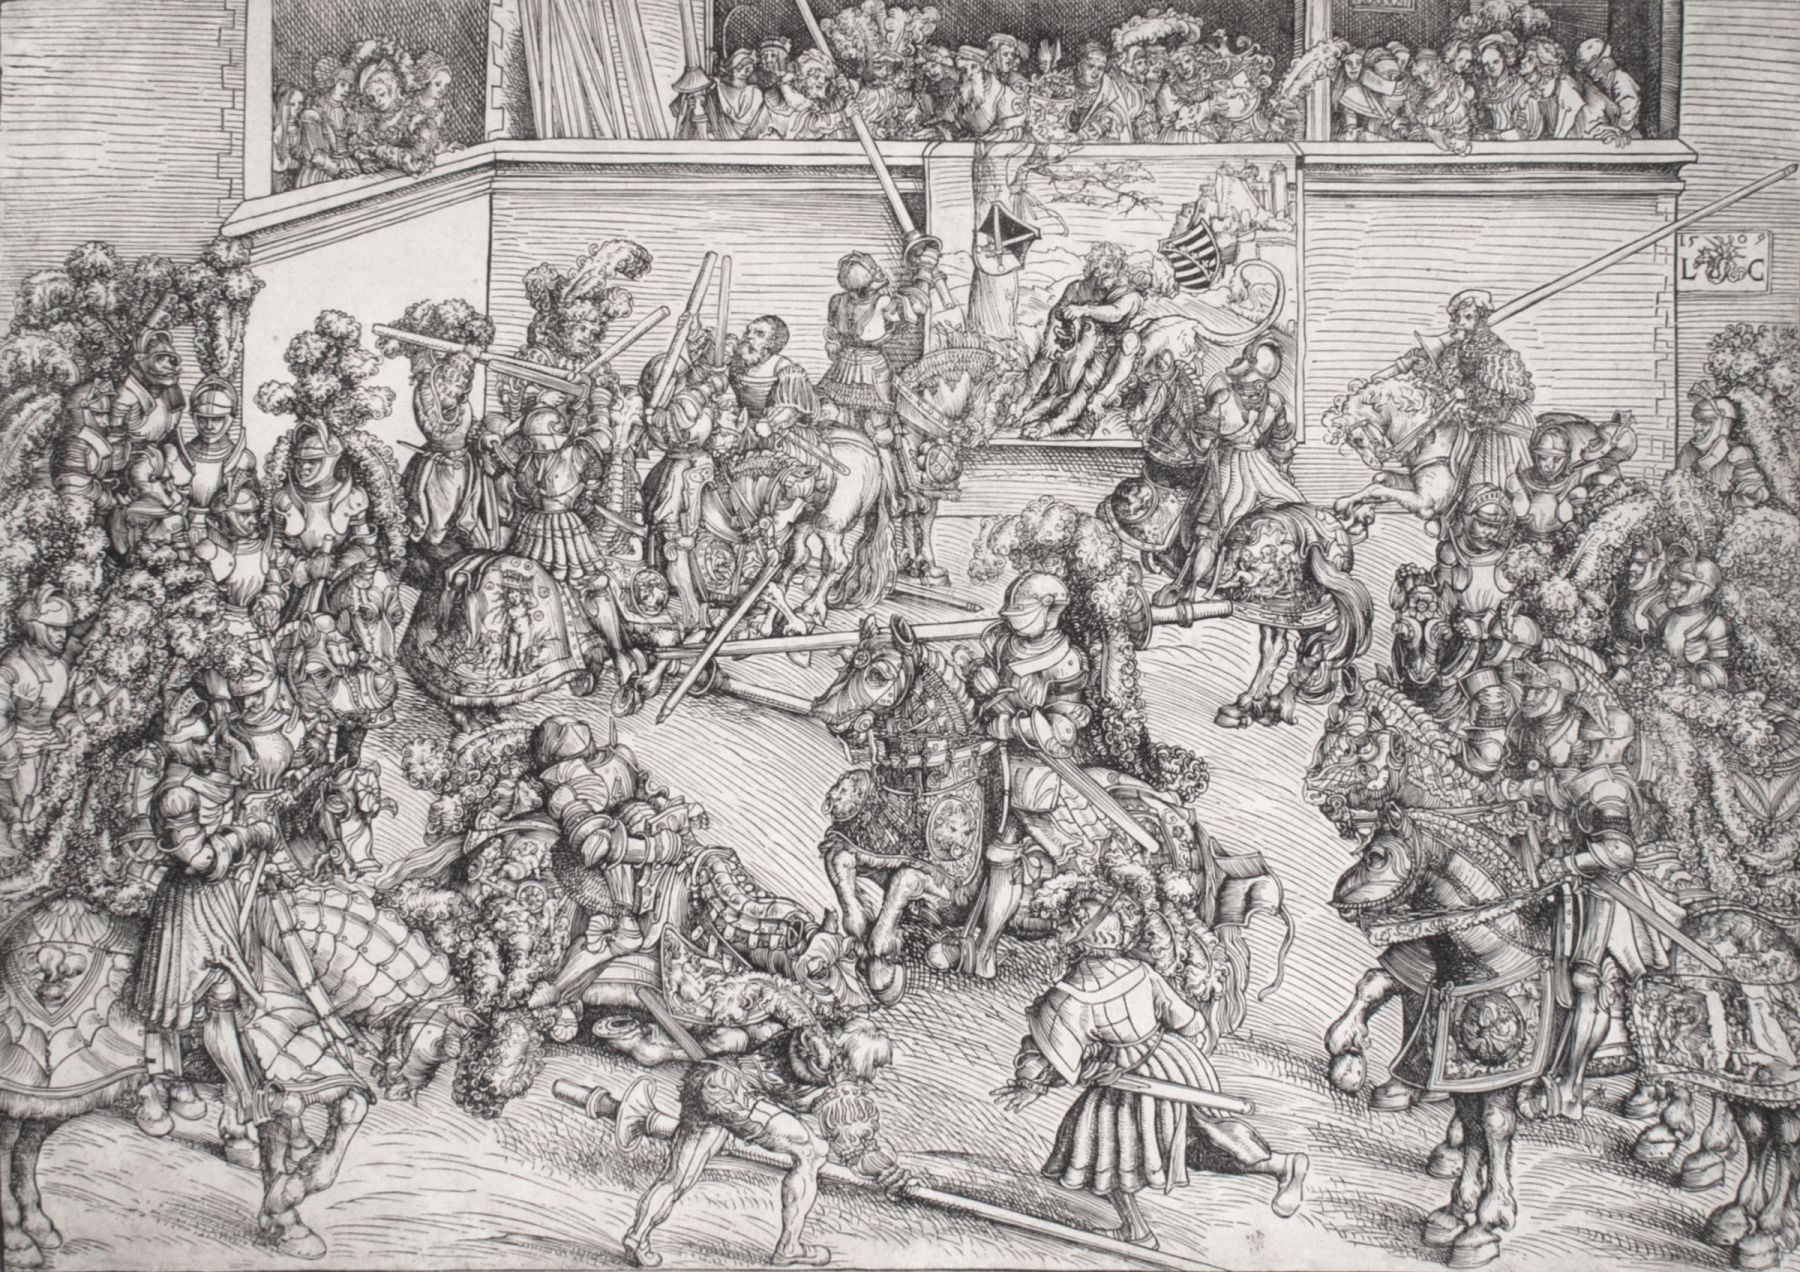 Lucas Cranach - The Second Tournament with the Tapestry of Samson and the Lion